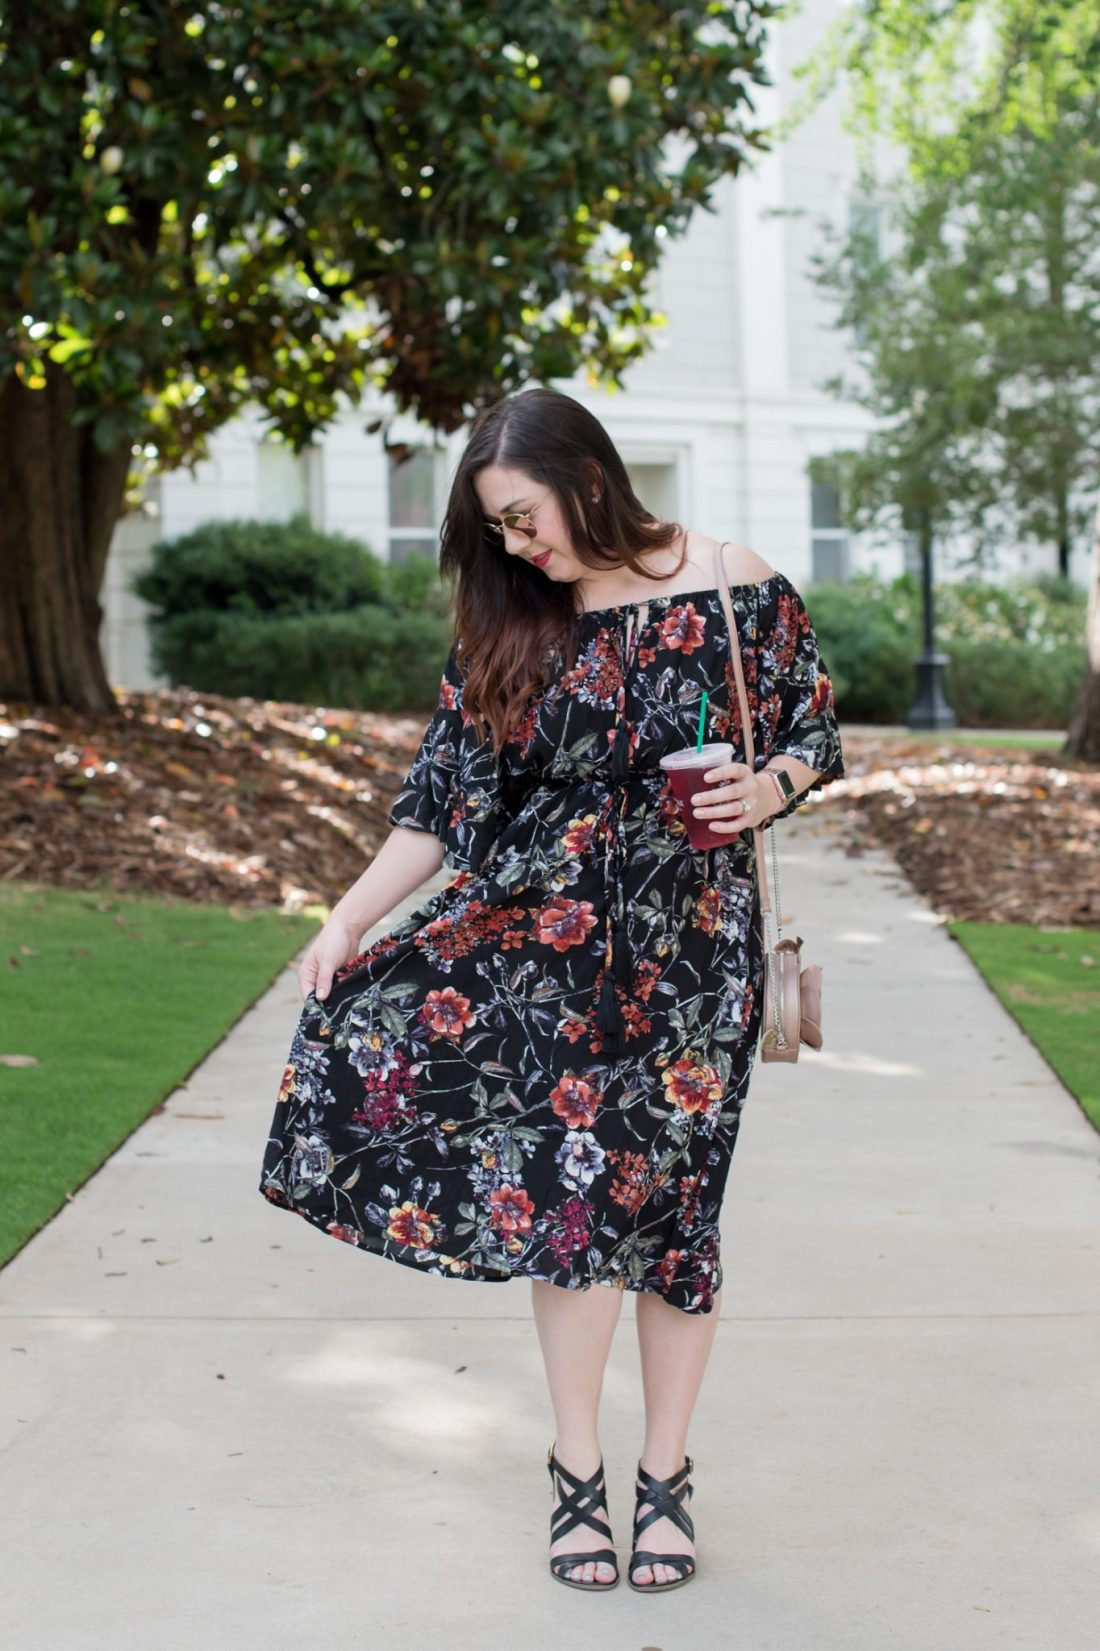 A Flirty Floral Off-the-Shoulder Dress via @missmollymoon